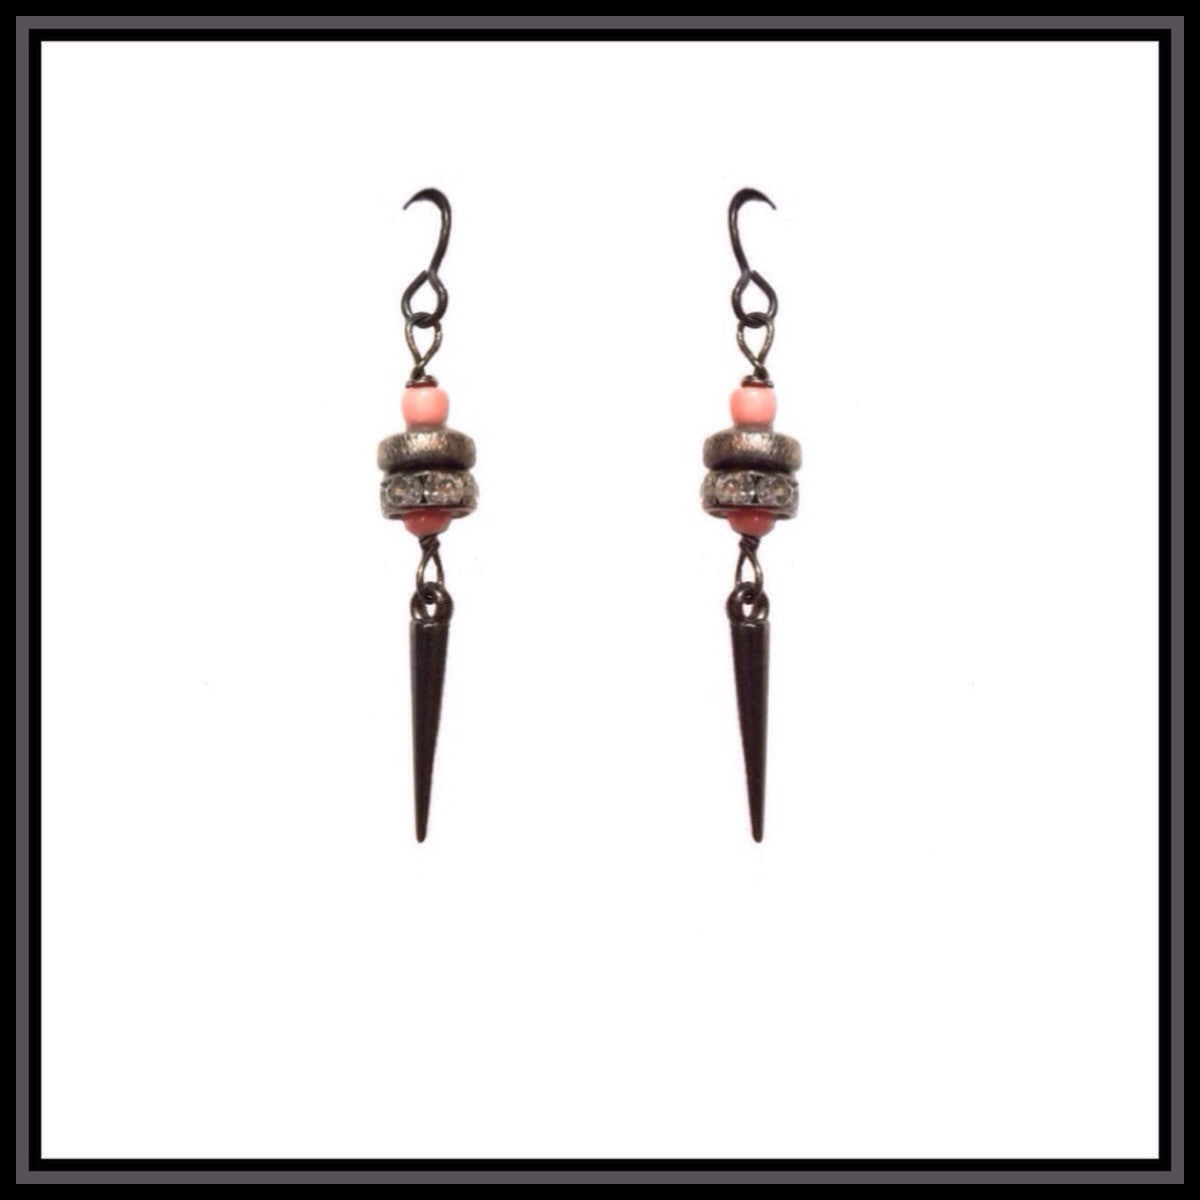 Coral and Gunmetal Spike Earrings